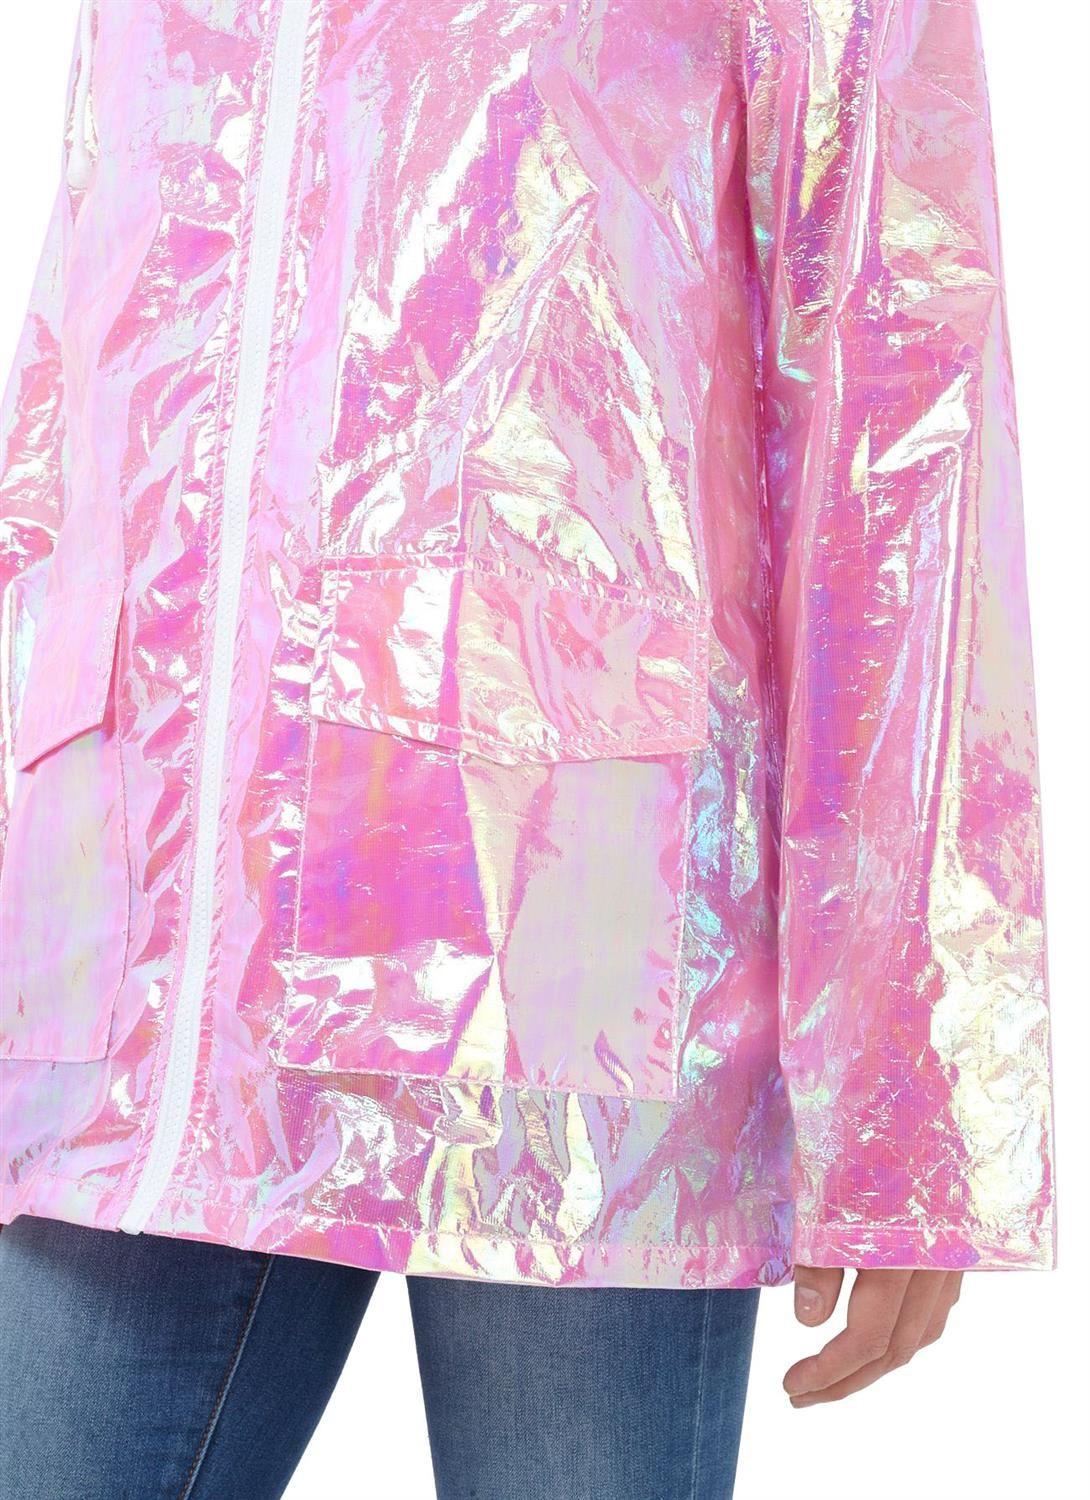 Womens-Waterproof-Holographic-Zipped-Neon-Festival-Mac-Jacket-Parka-Raincoat thumbnail 5